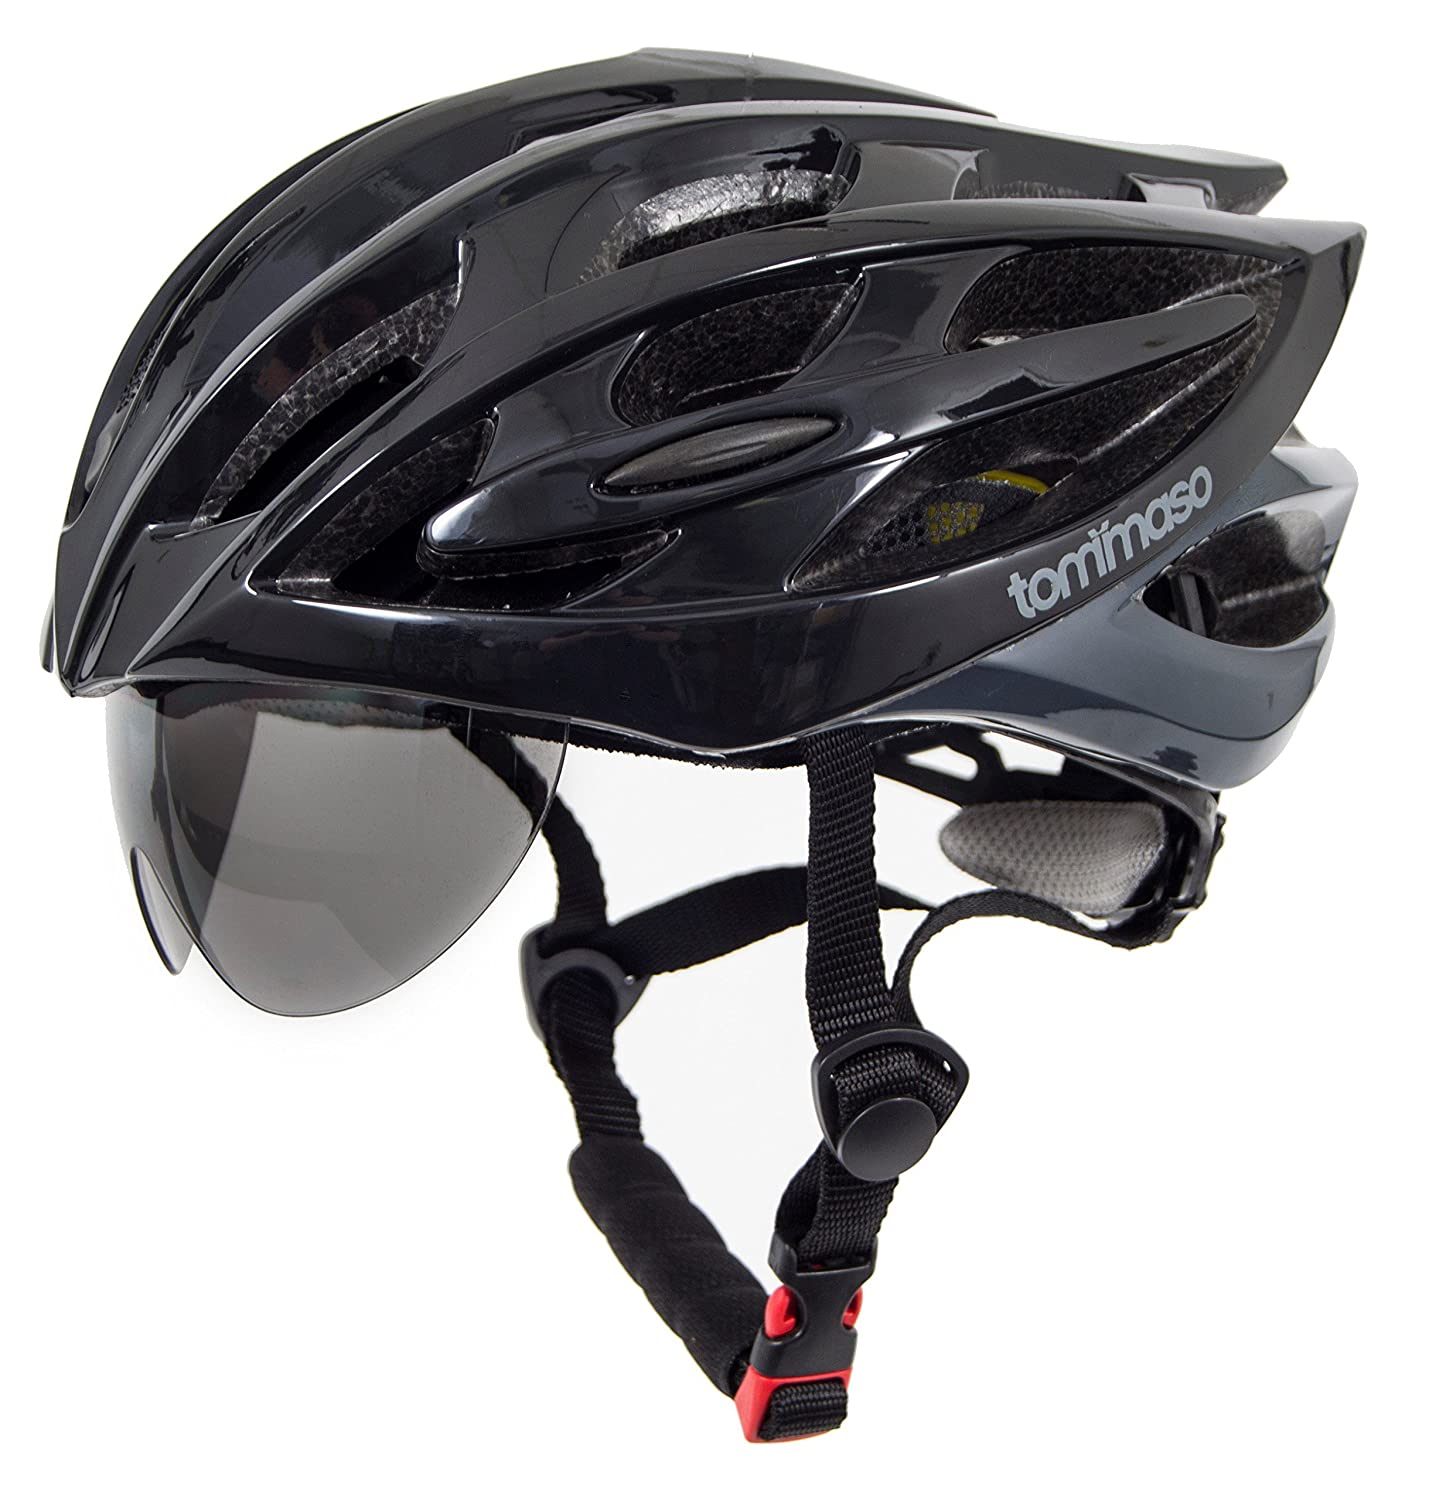 Tommaso Sole Lightweight Cycling Helmet Retractable Eye Both Have Been Verified I Like The Bmtb A Lot However Just Shield Road Mtb Adjustable Fit 2 Sizes 4 Colors Black Matte White